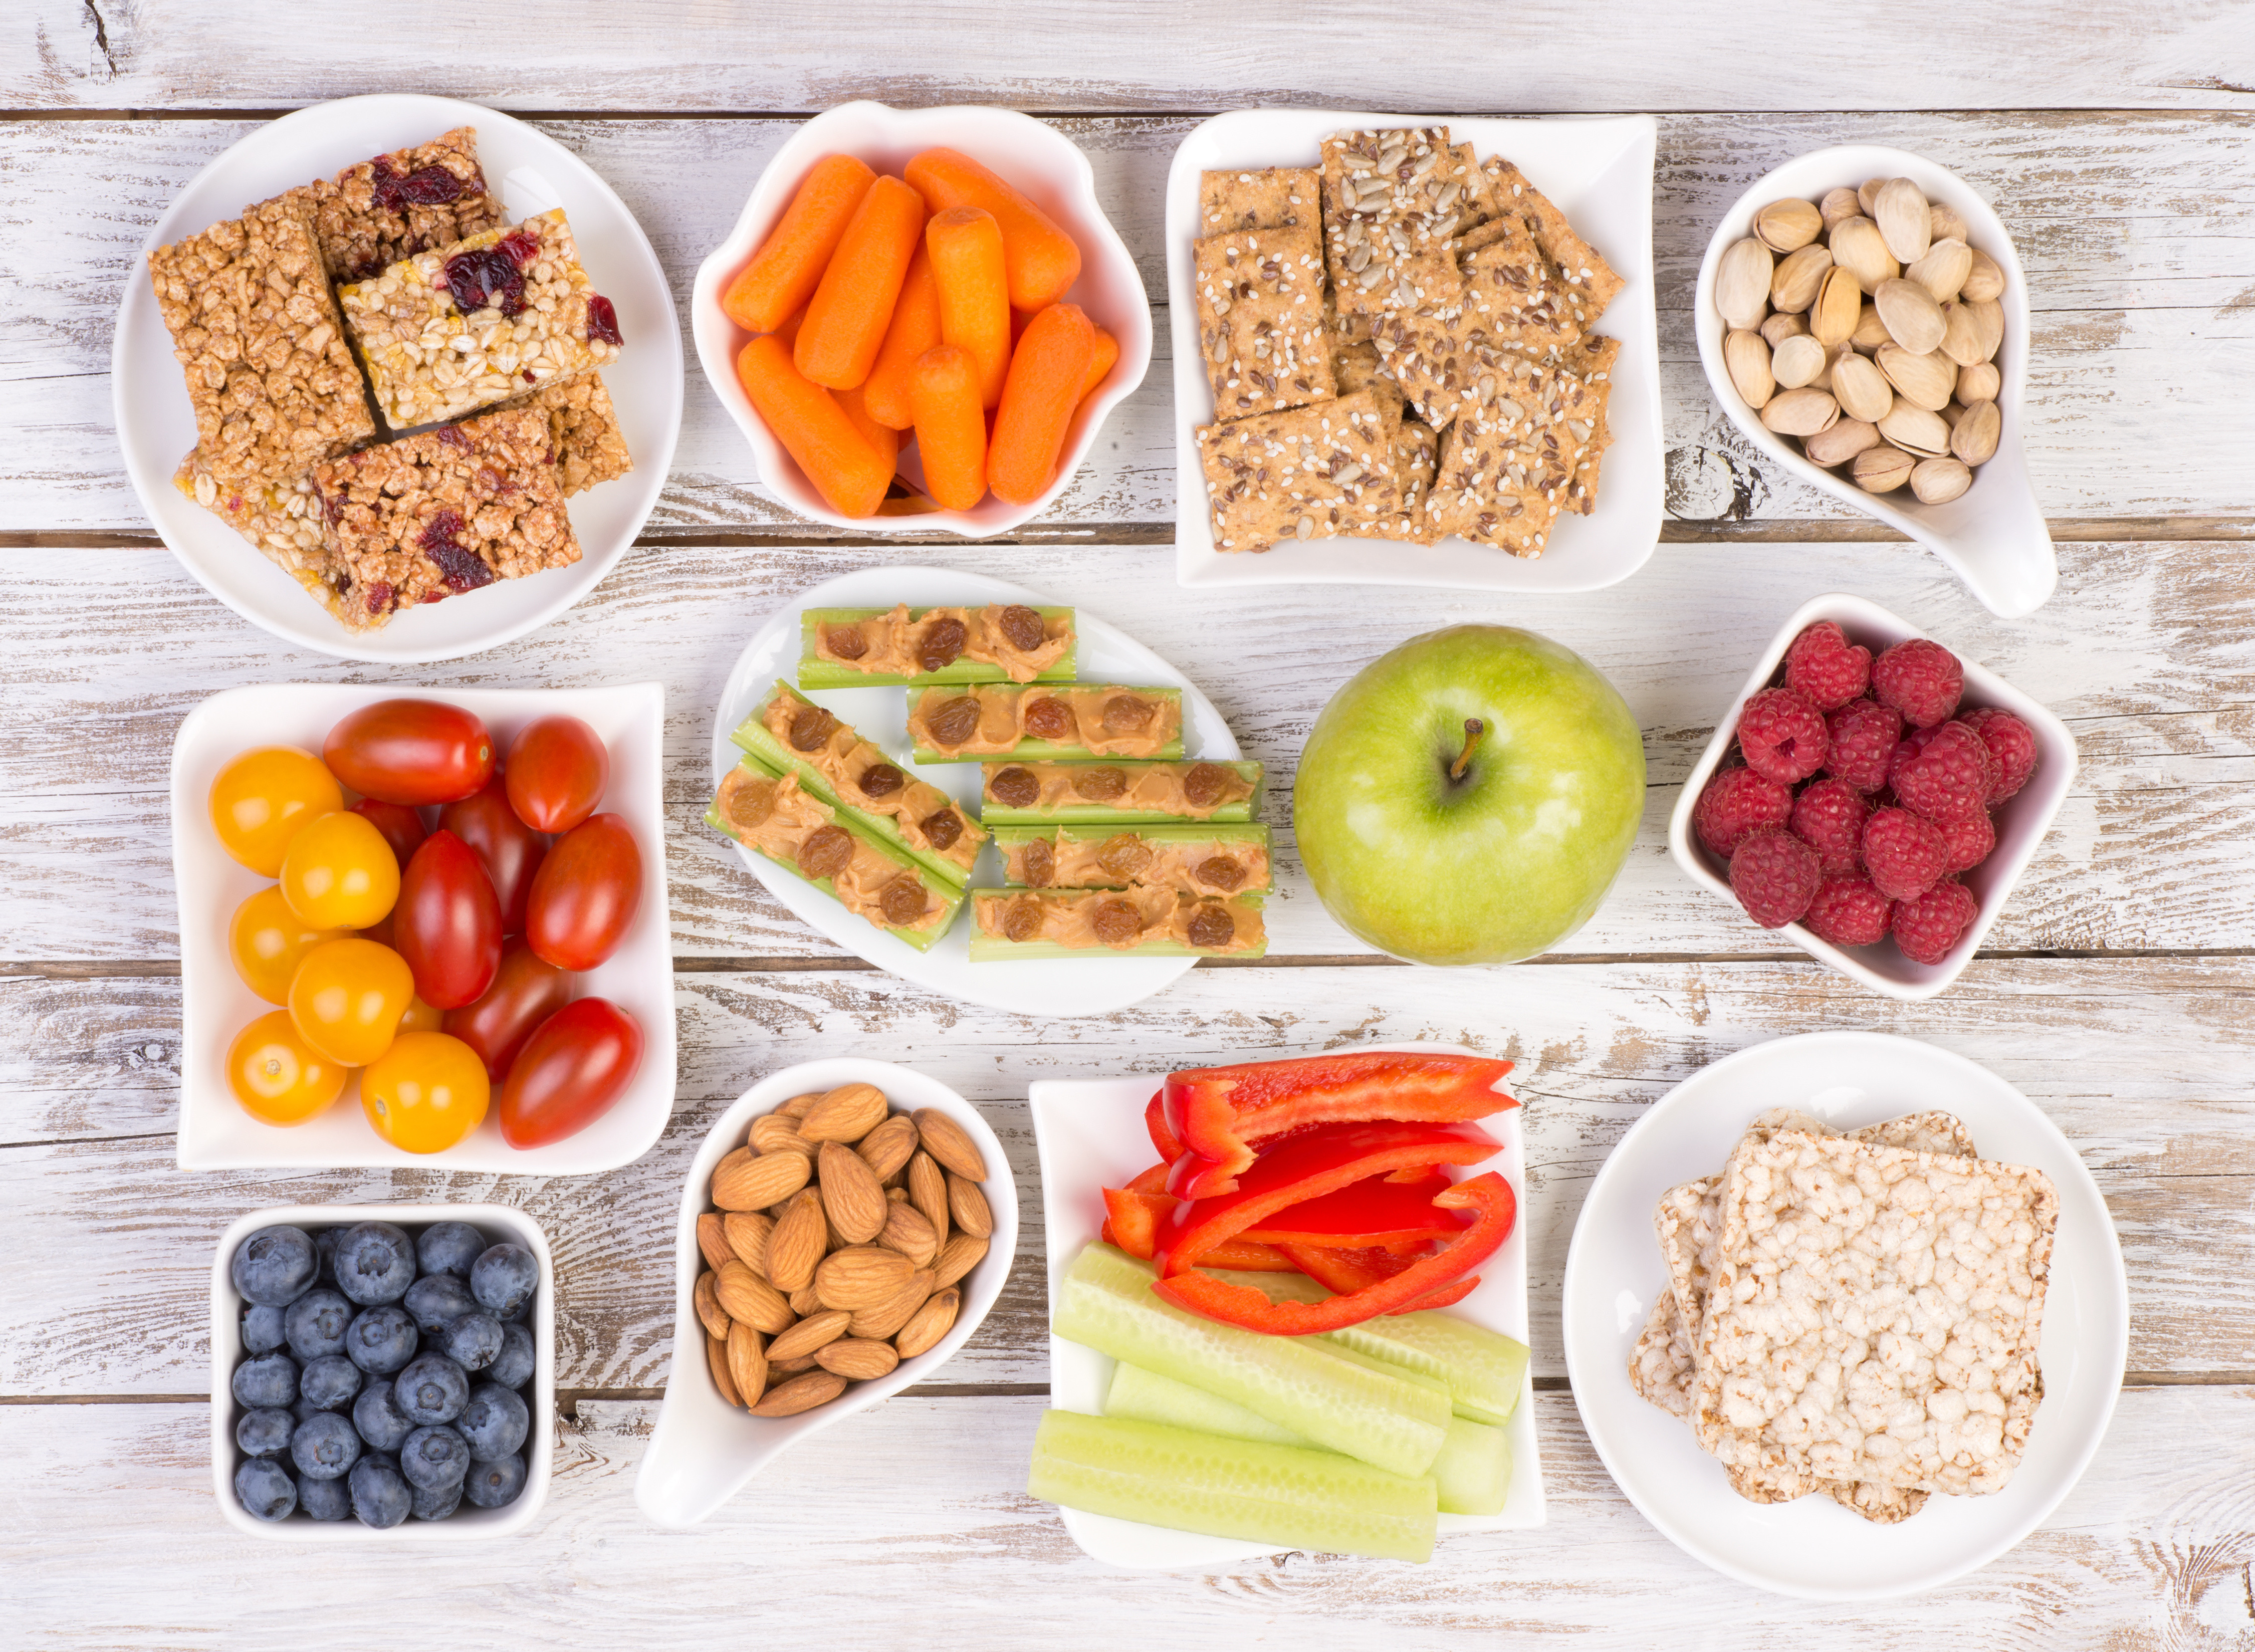 Healthy But Filling Snacks  Five Filling Snacks to Help You Eat Healthy – karen sutton MD